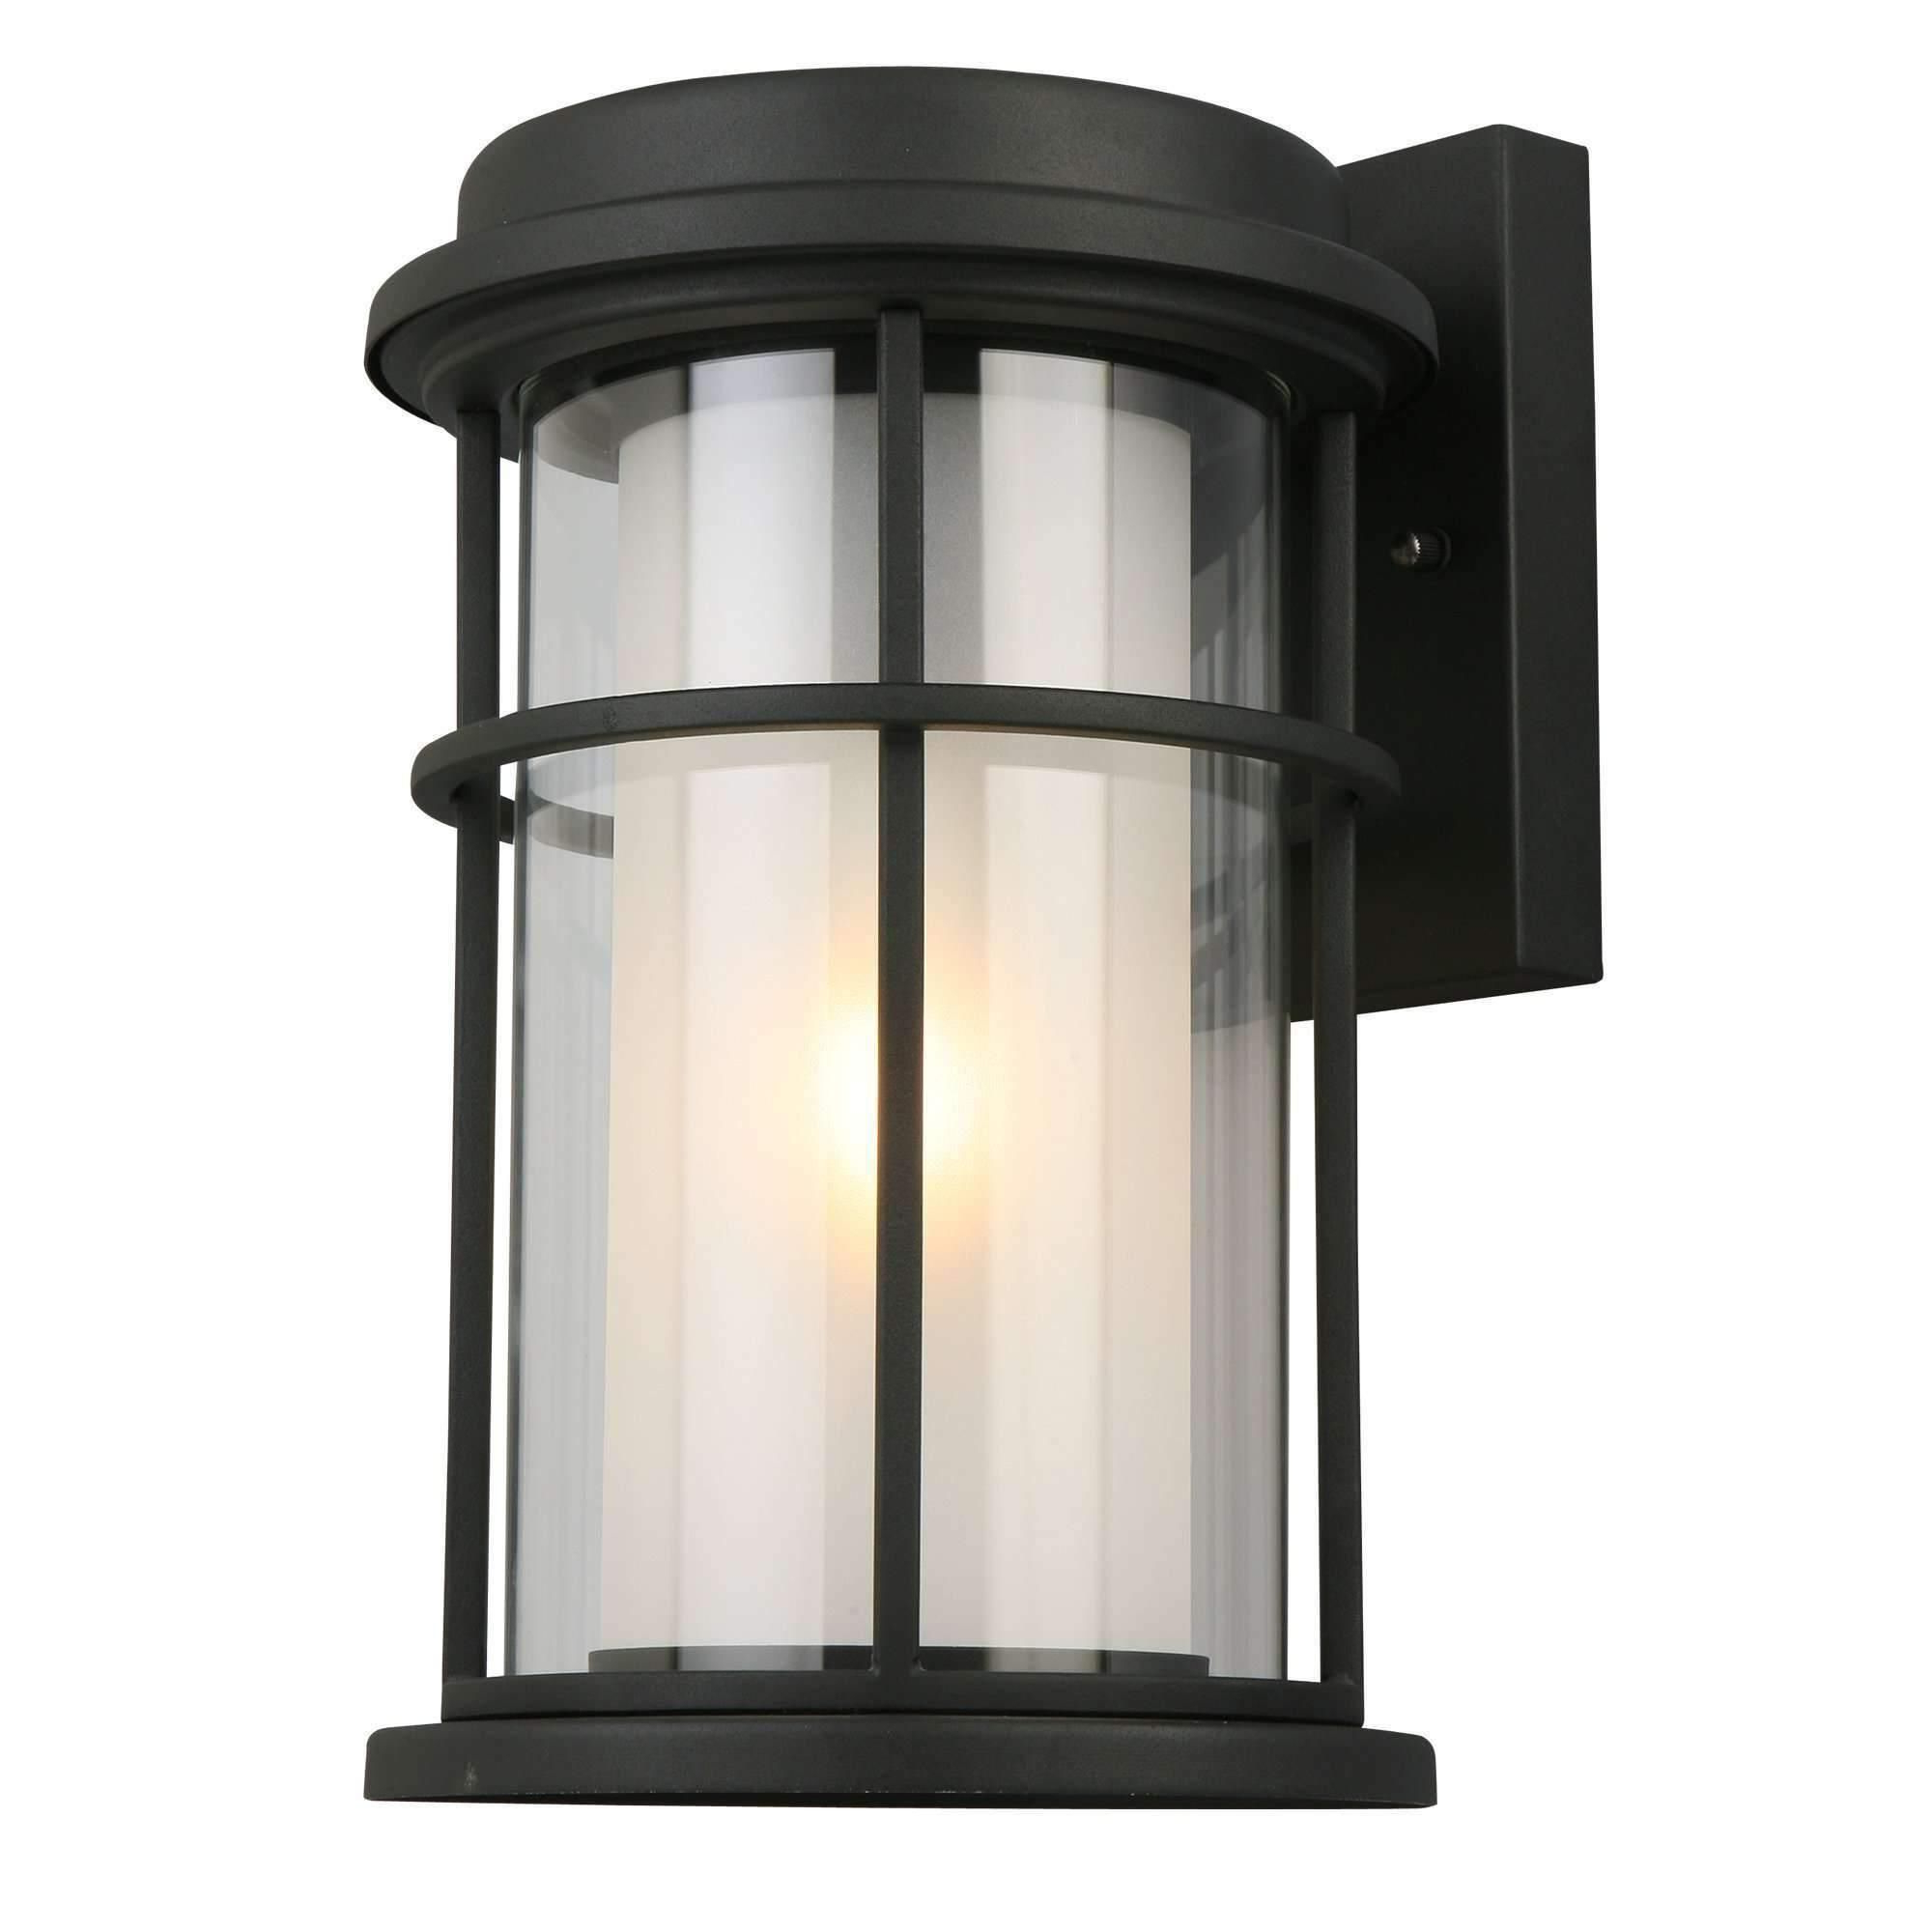 Well Known 1x60w Outdoor Wall Light W/ Matteblack Finish & Frosted Throughout Keiki Matte Black Outdoor Wall Lanterns (View 17 of 20)